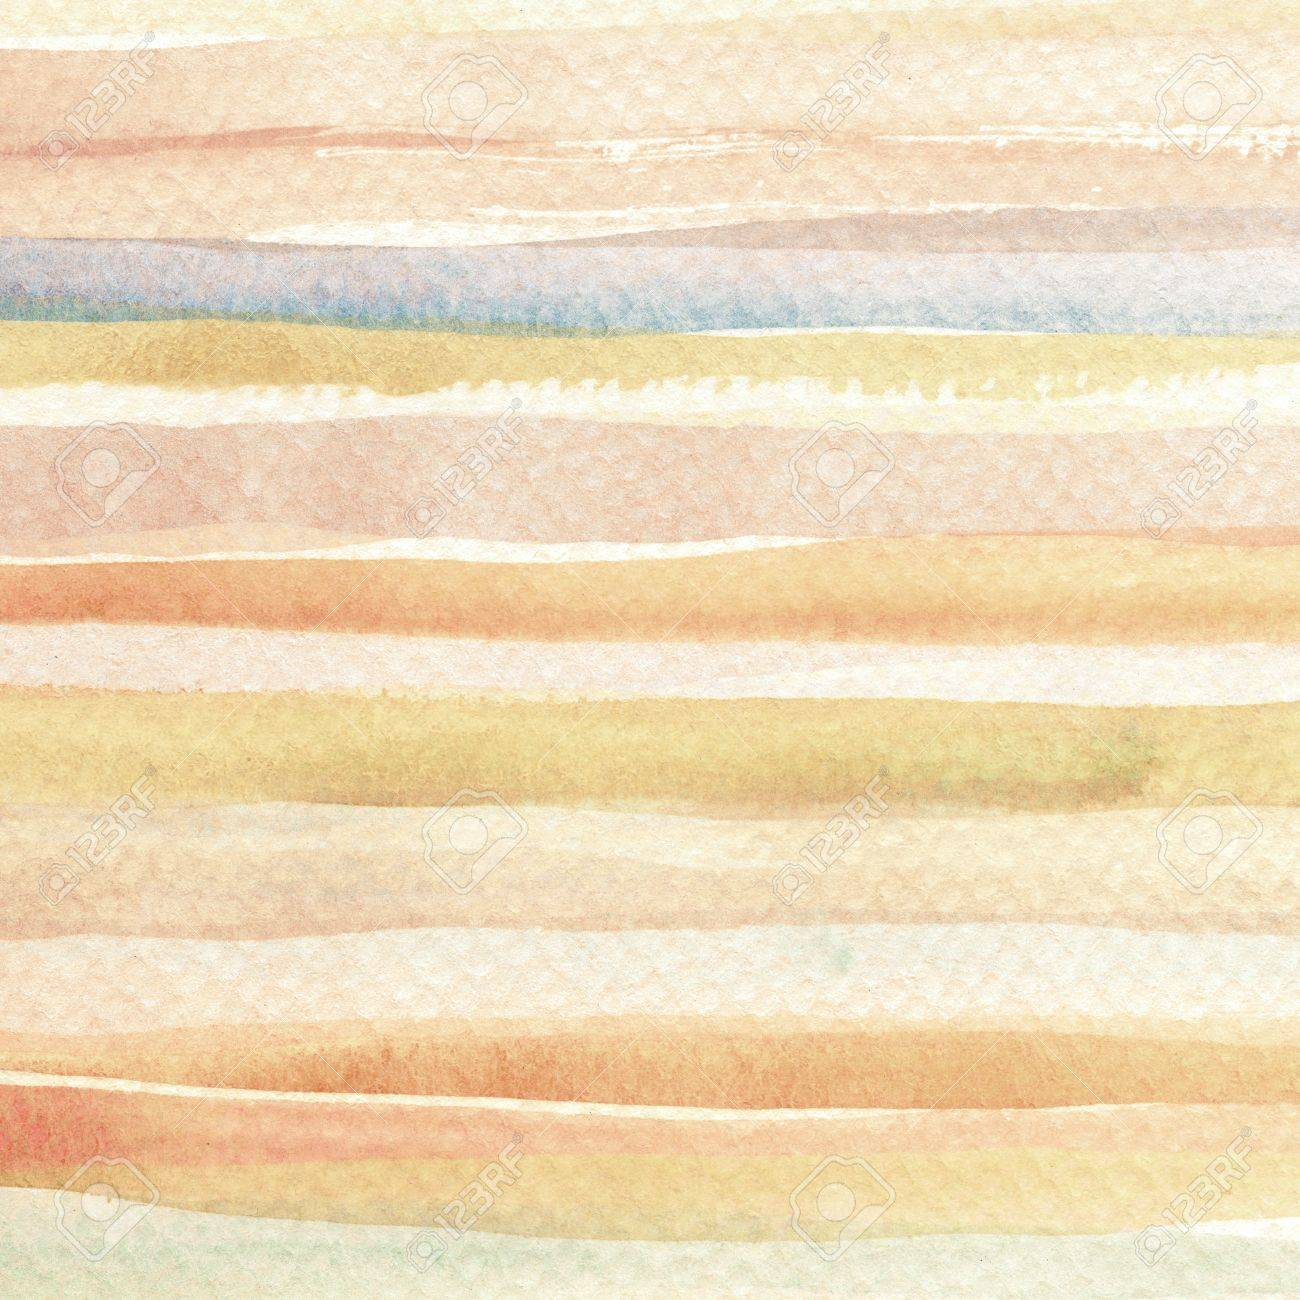 Watercolor art background, texture Stock Photo - 16334355